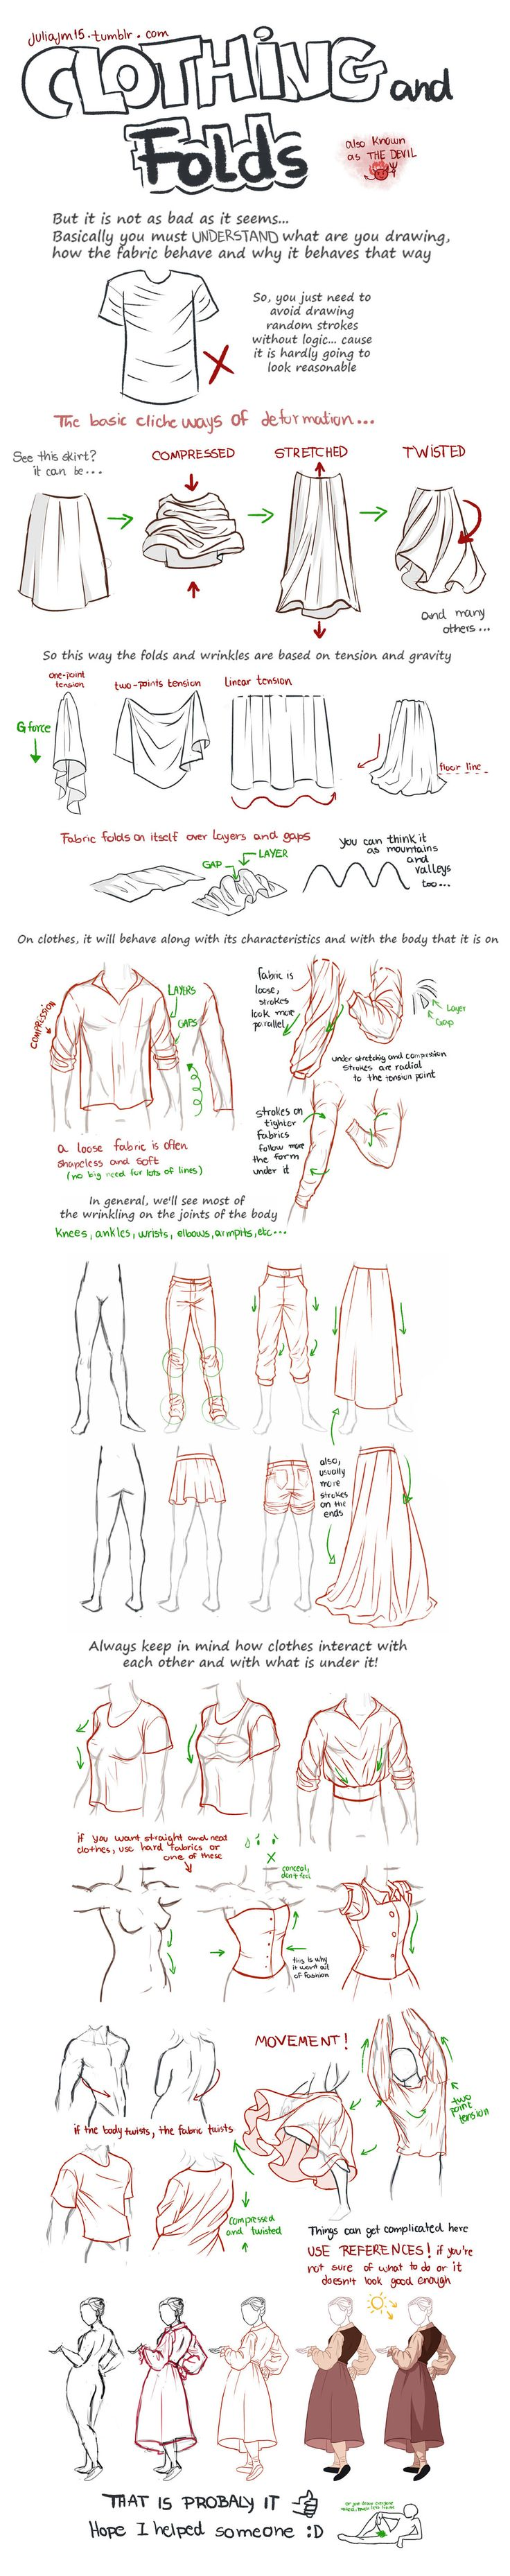 Clothing and Folds Tutorial by juliajm15 on DeviantArt